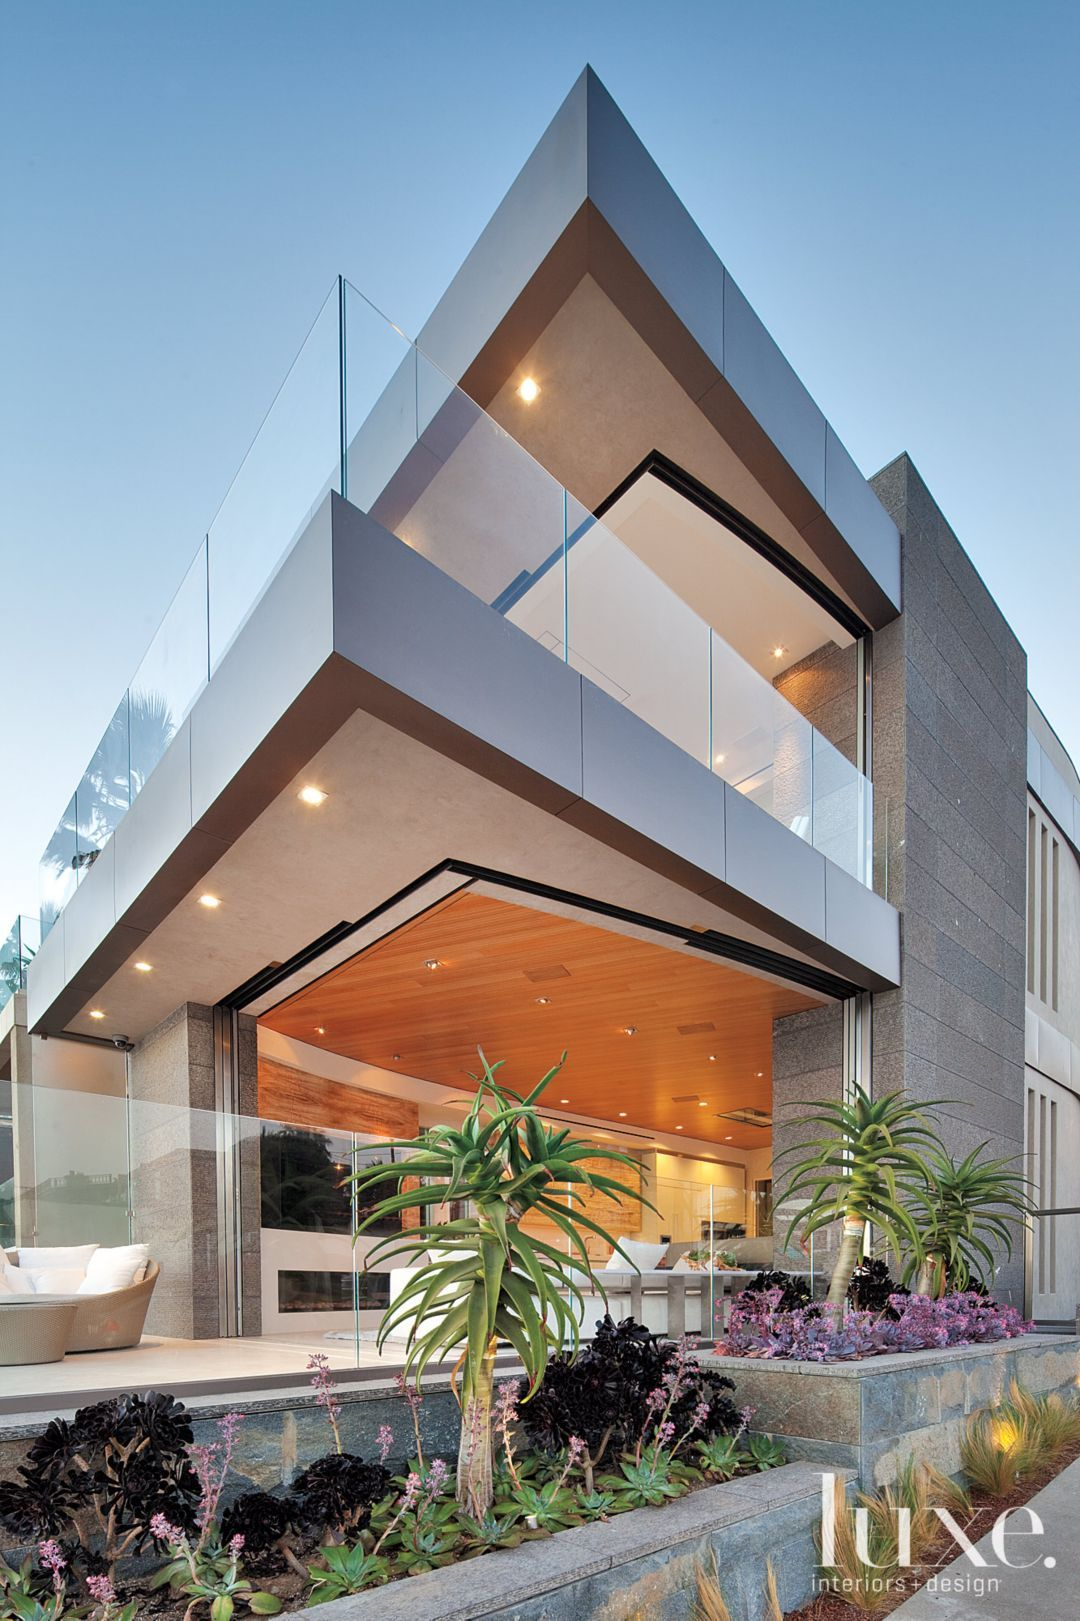 Beachfront Luxury Modern Home Exterior At Night: Luxe Magazine - The Luxury Home Redefined